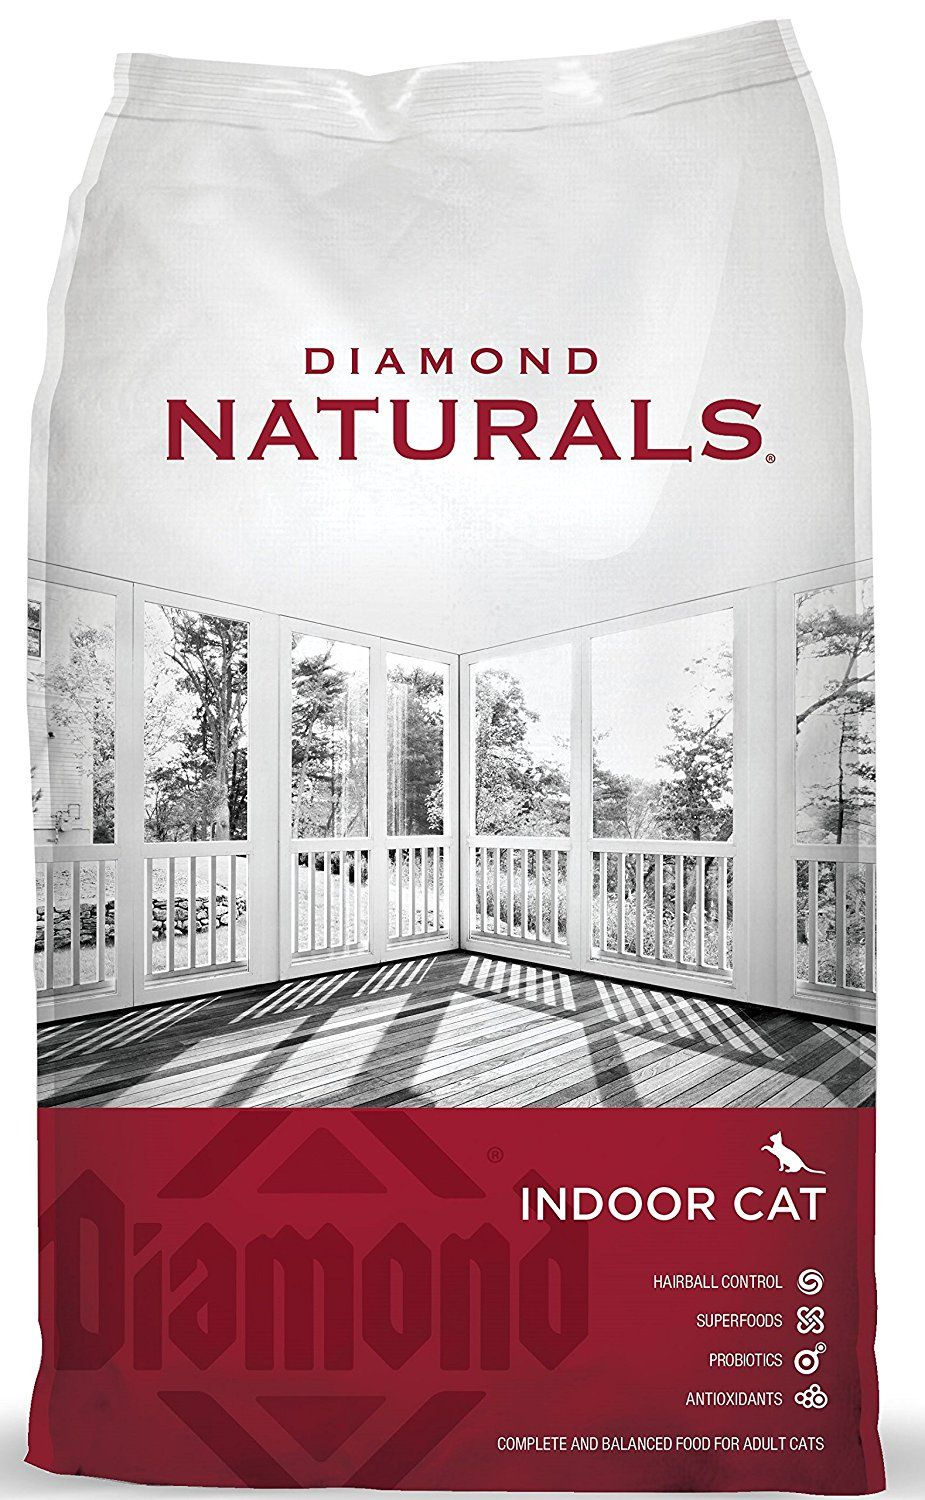 Diamond naturals active cat chicken meal and rice formula